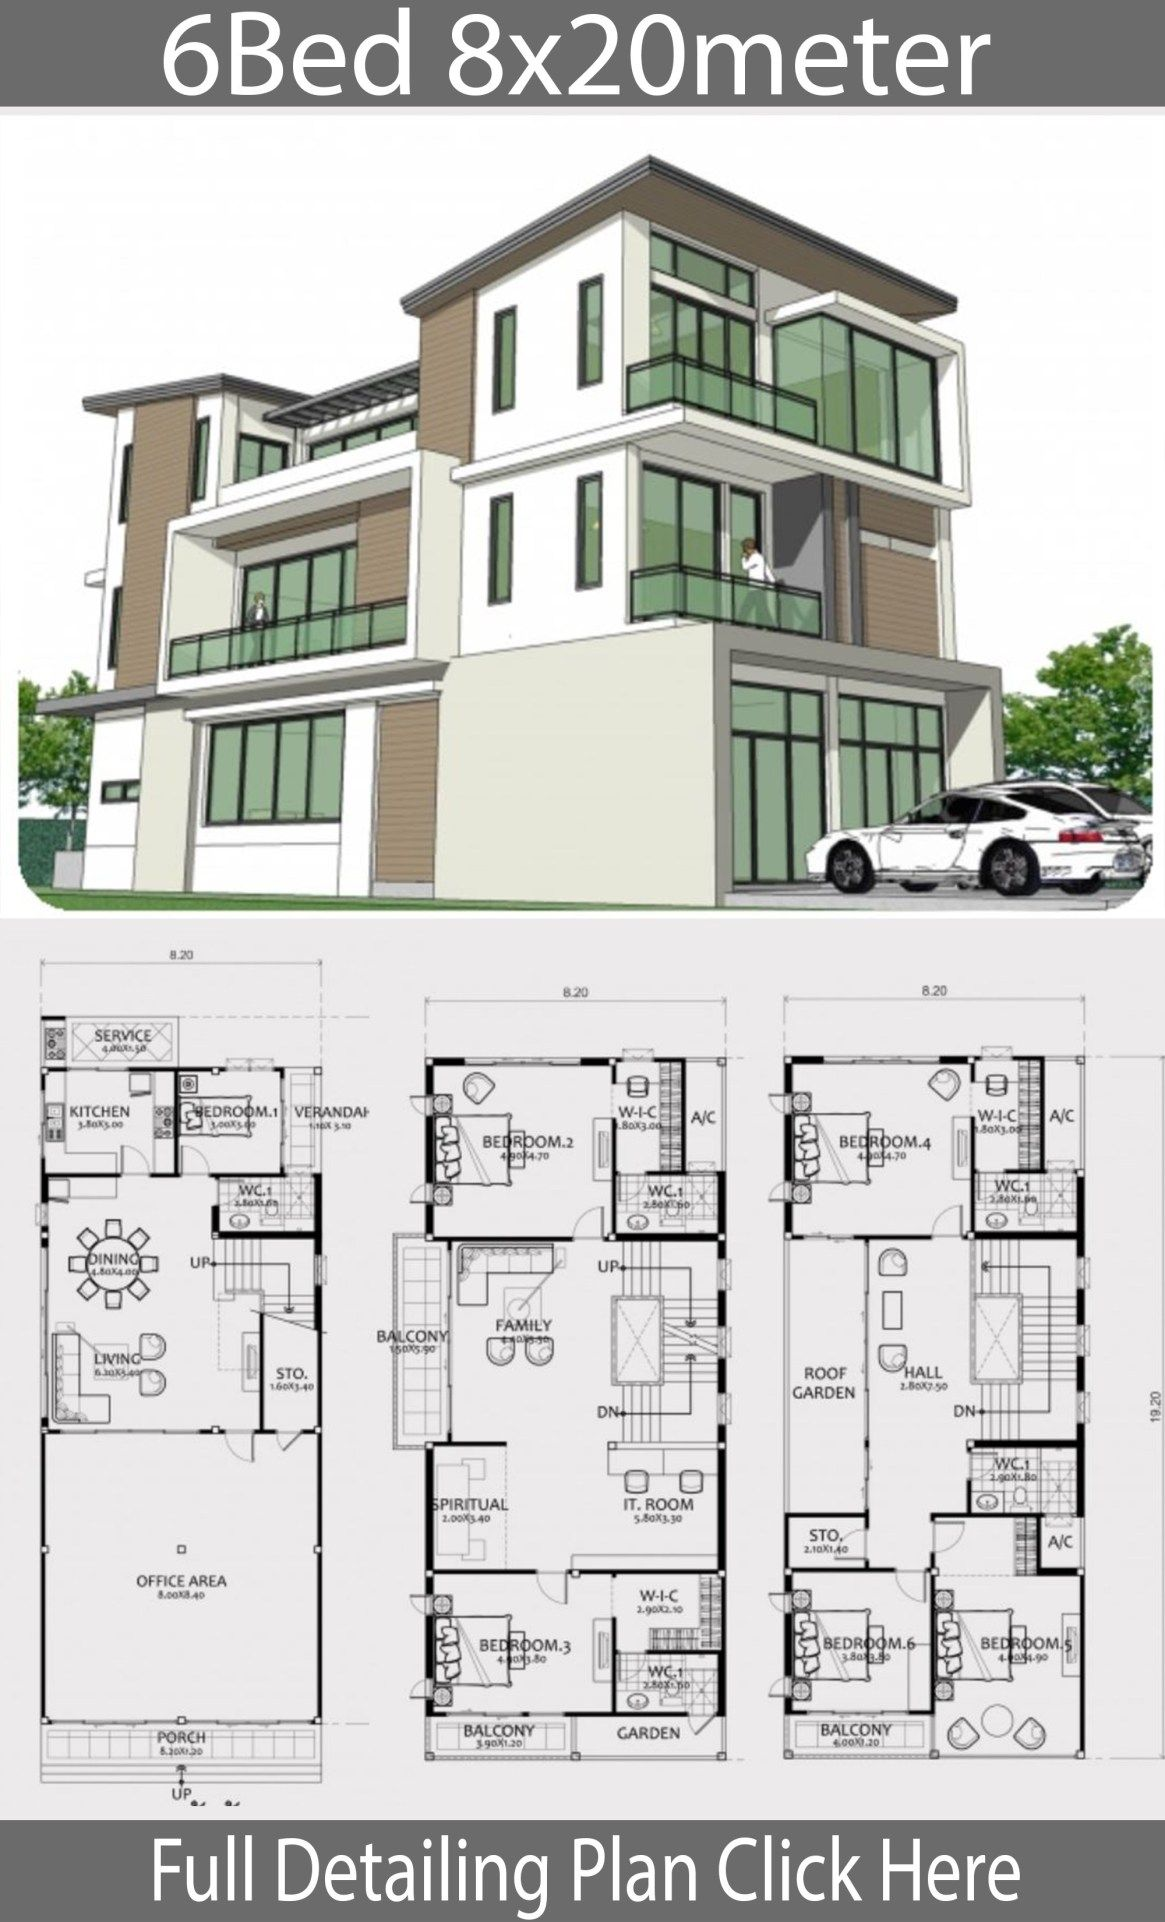 Home Design Plan 8x20m With 6 Bedrooms Home Design With Plansearch Two Story House Design Modern House Design Modern House Plans